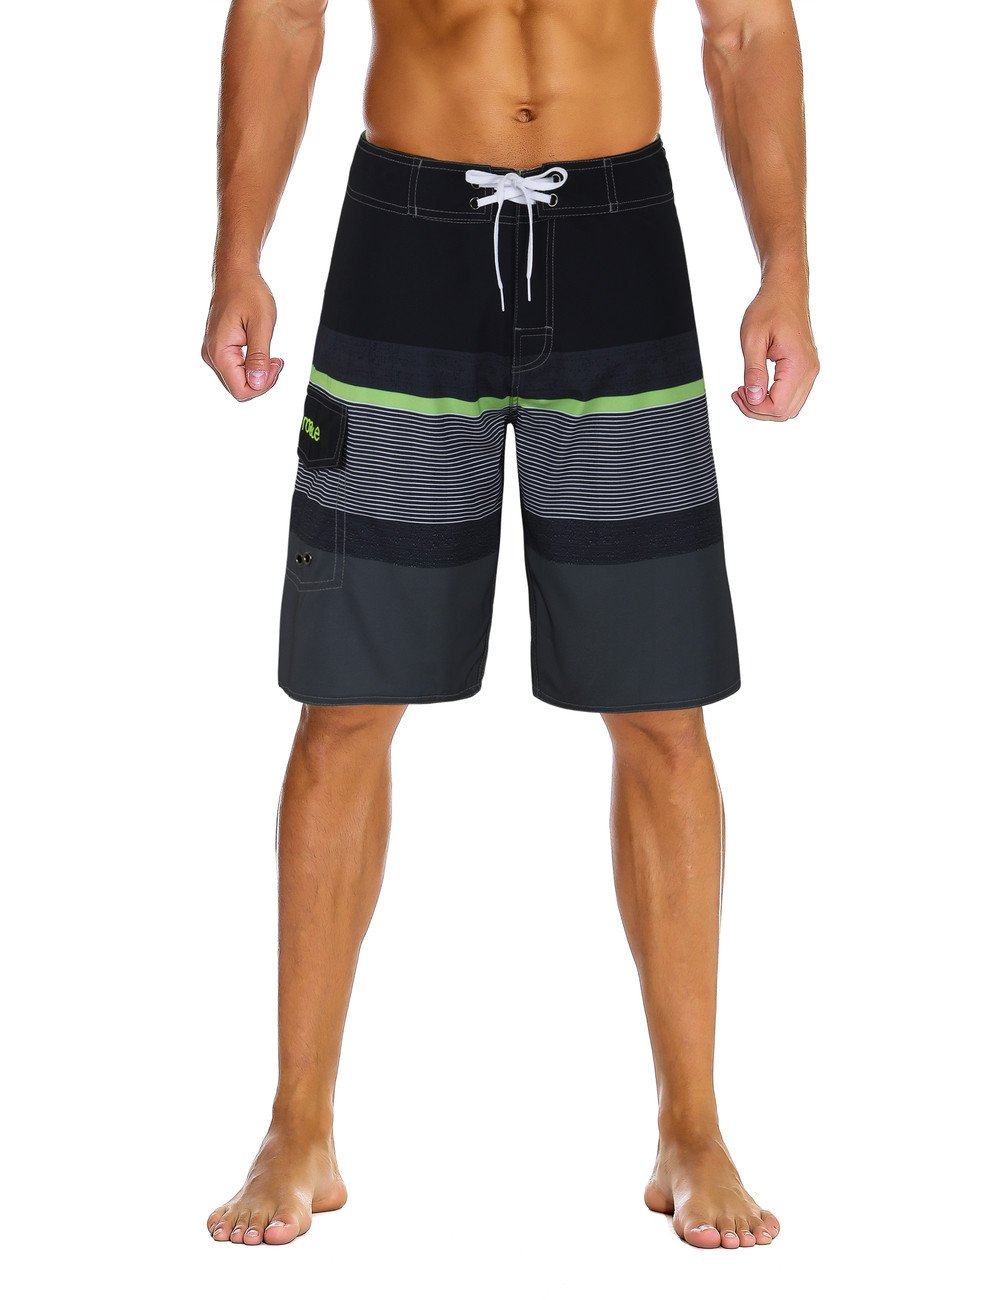 Nonwe Men's Sportwear Quick Dry Board Shorts with Lining Black&Gray 34